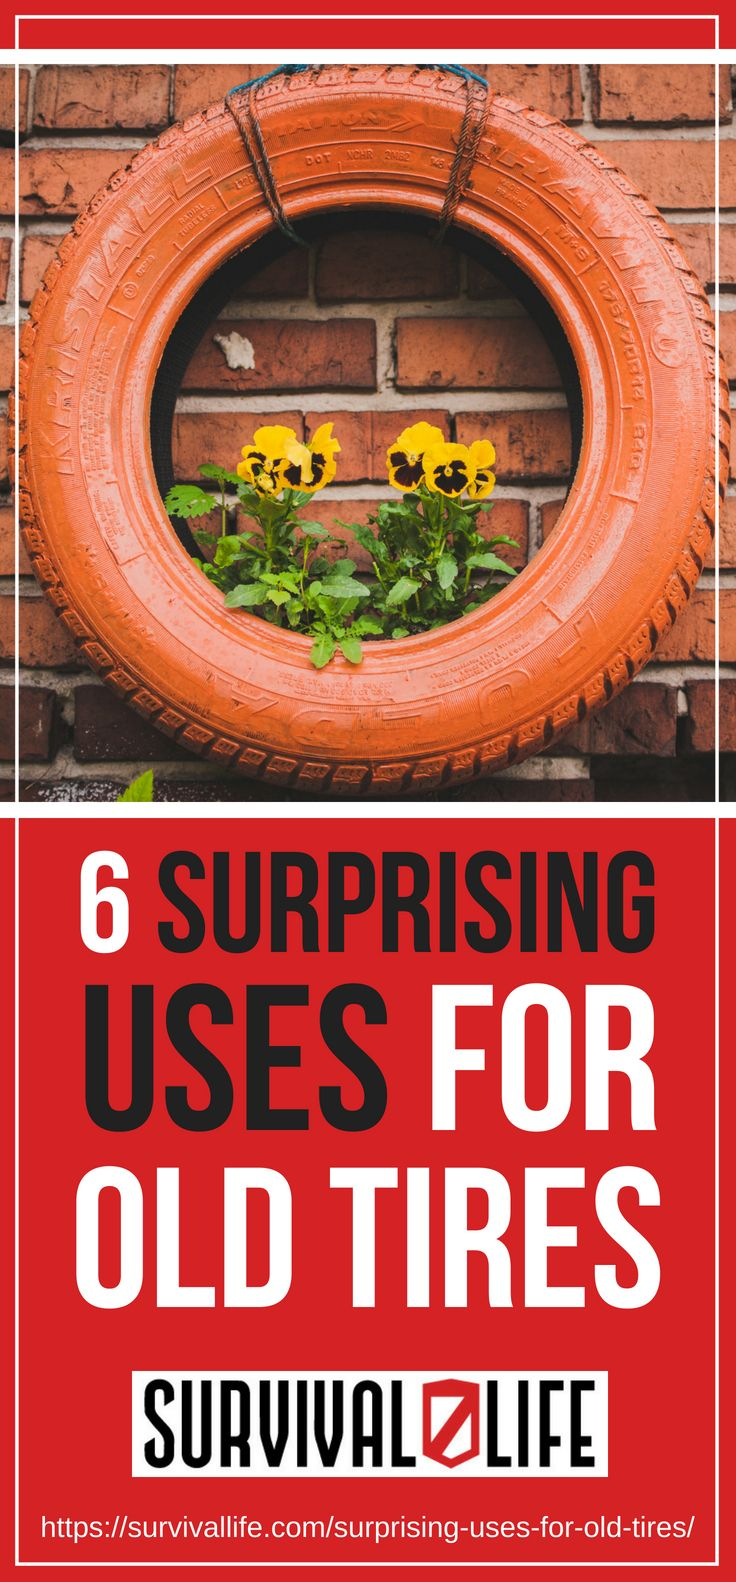 Surprising Uses For Old Tires | https://survivallife.com/surprising-uses-for-old-tires/